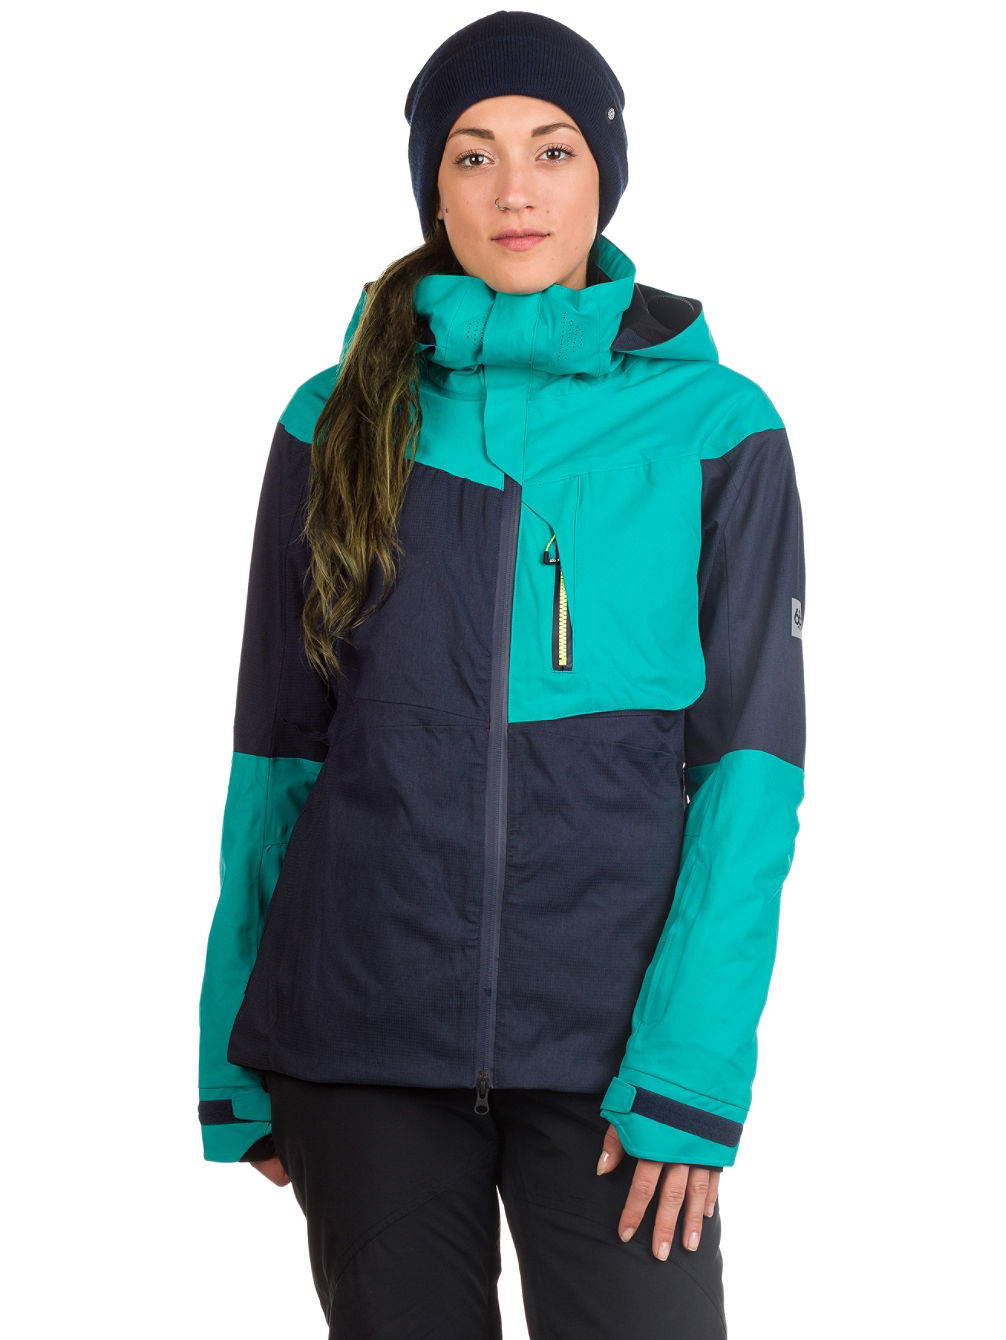 GLCR Solstice Thermagraph Jacket